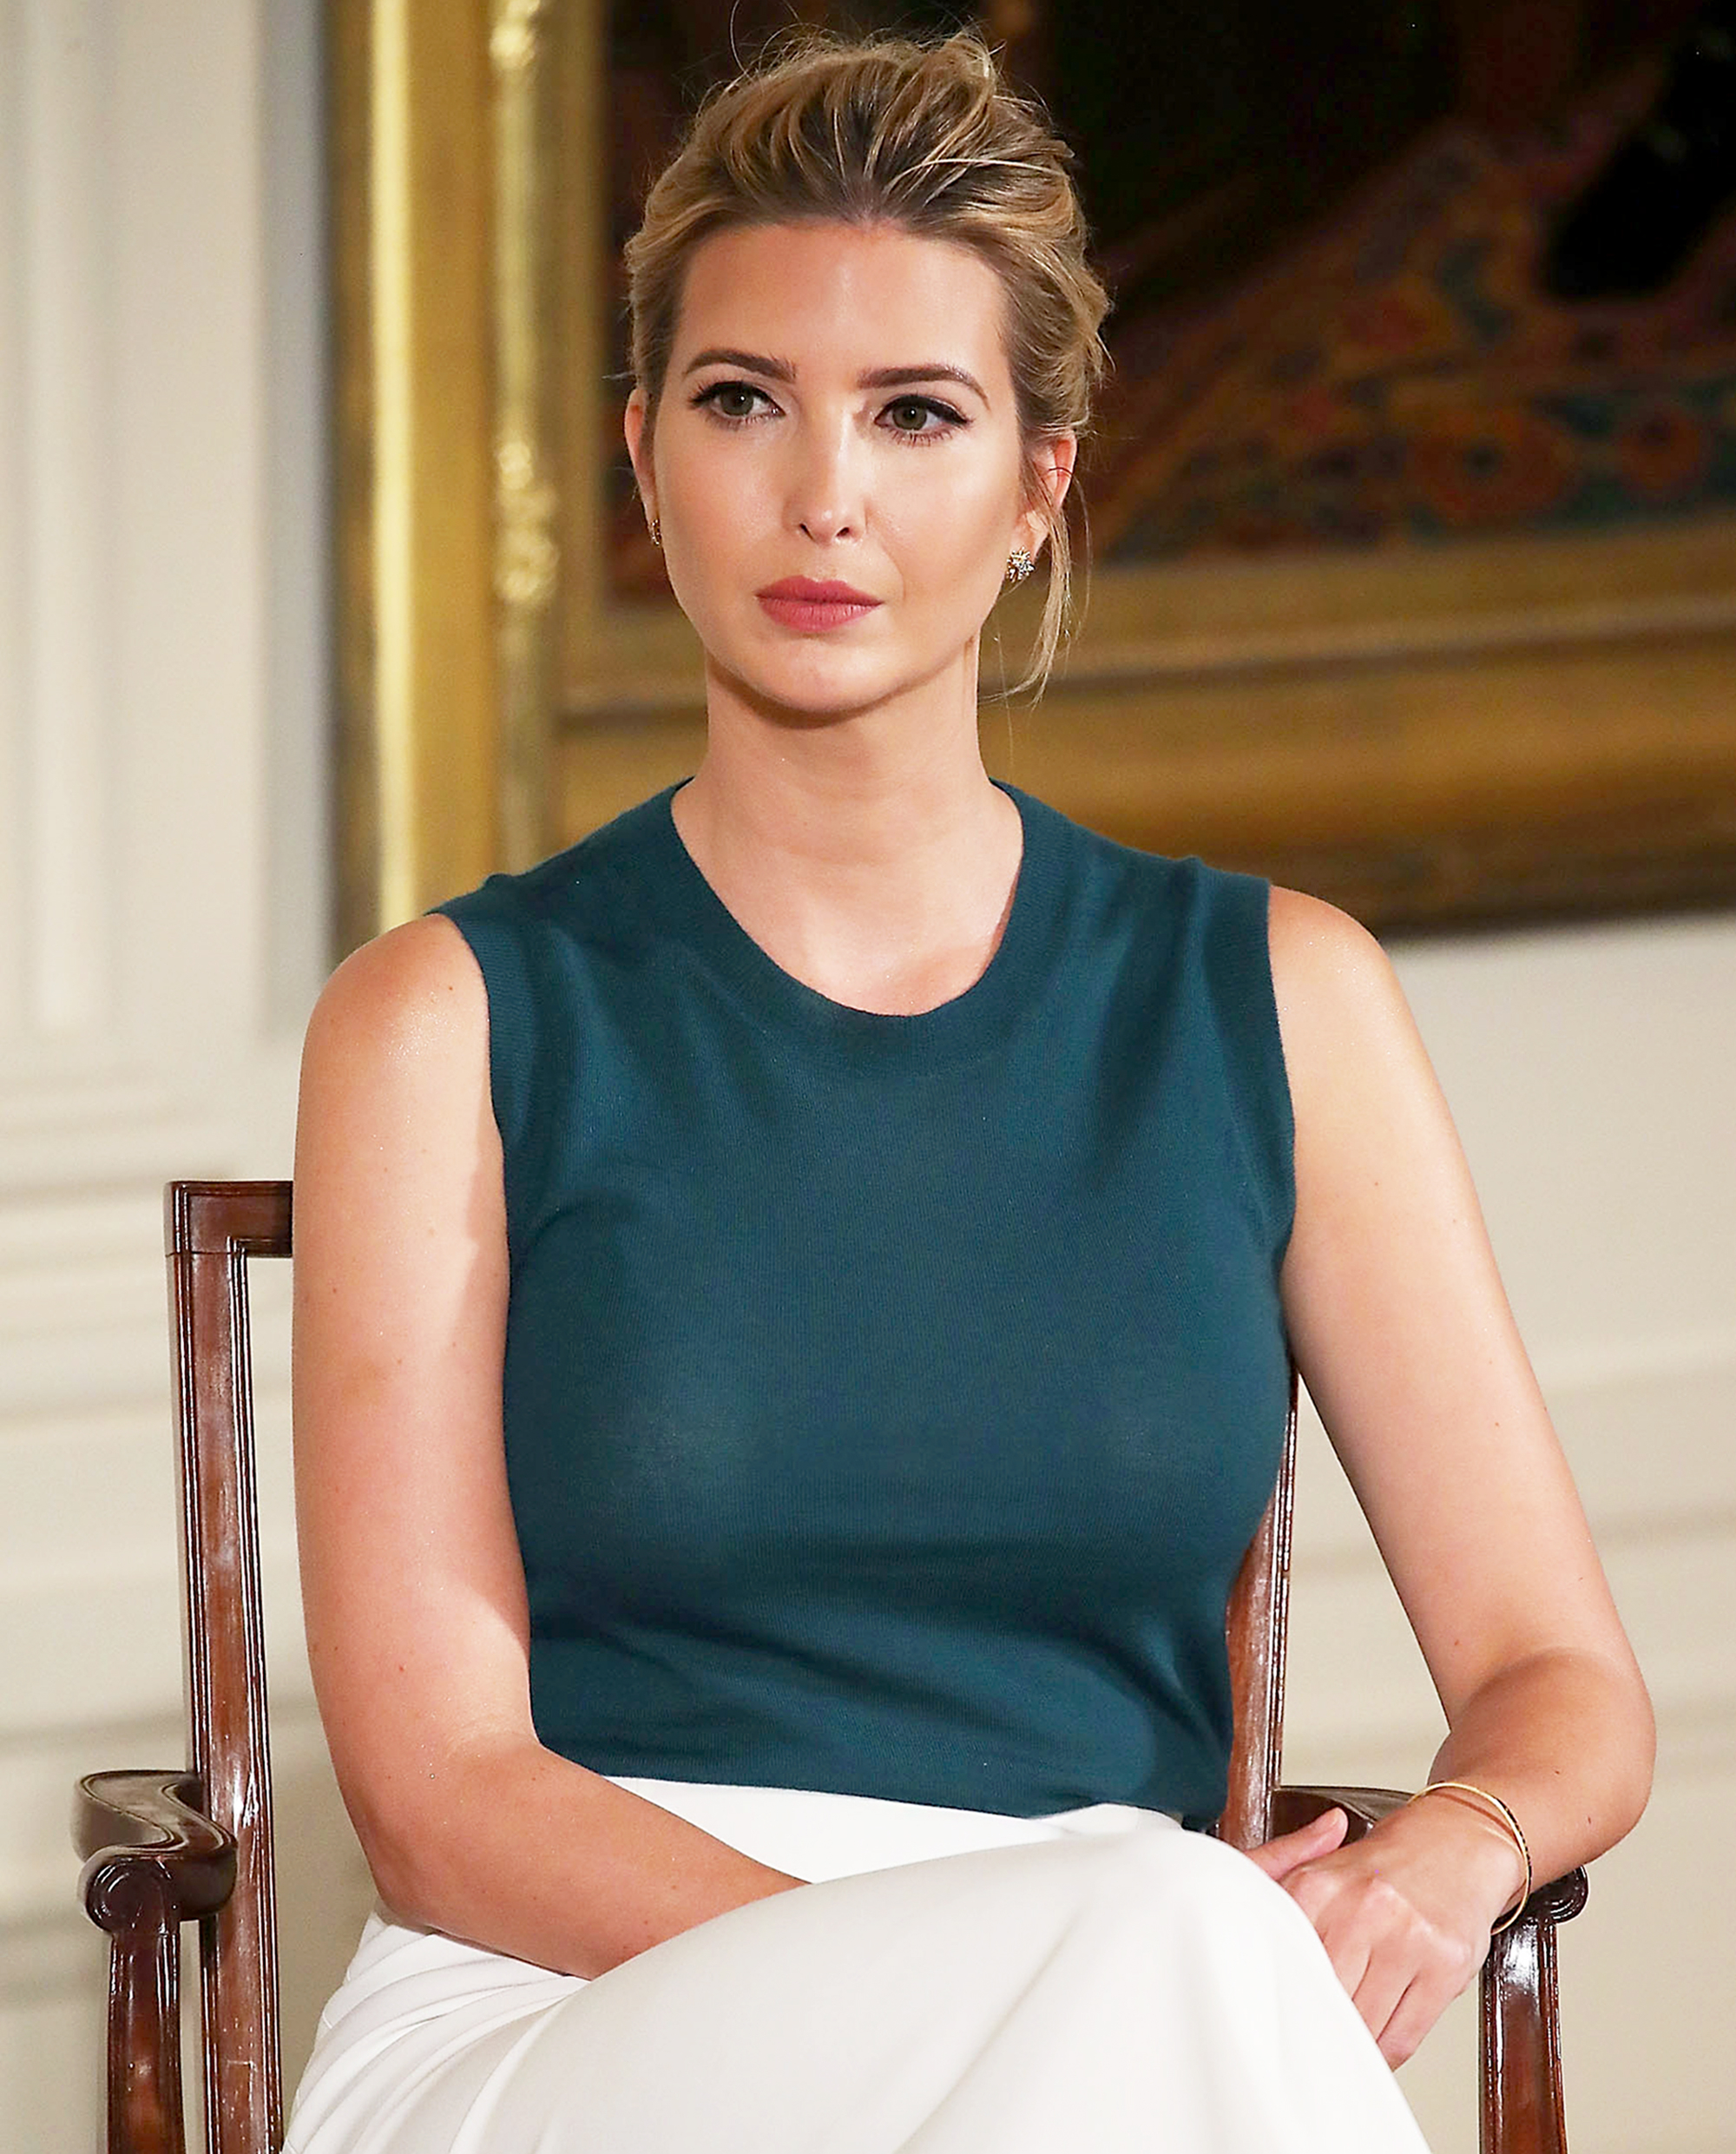 Ivanka Trump Supports Ending Barack Obama's Equal Pay Initiative